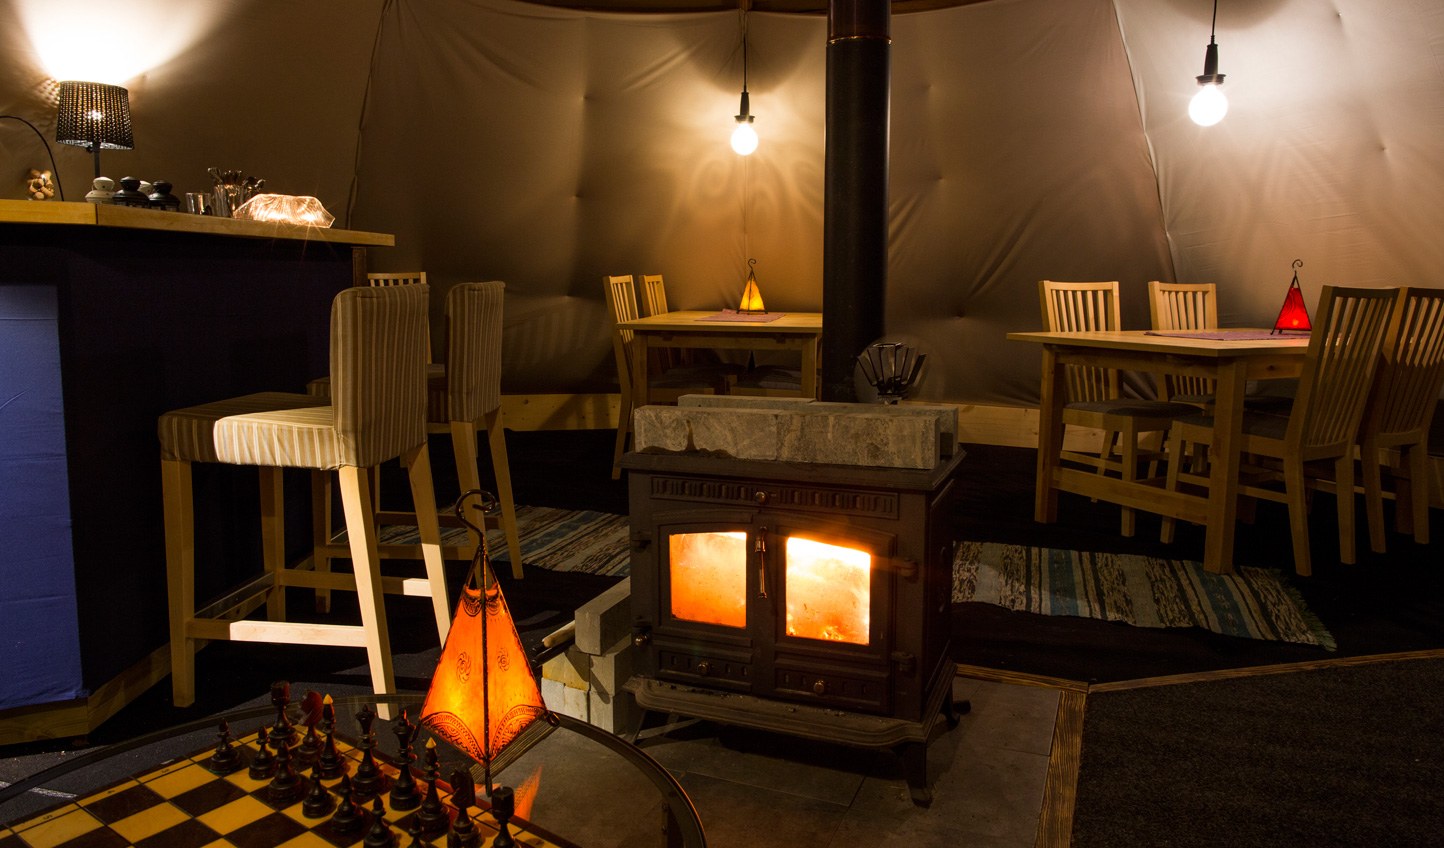 Warm your toes by the fire and have a hot drink